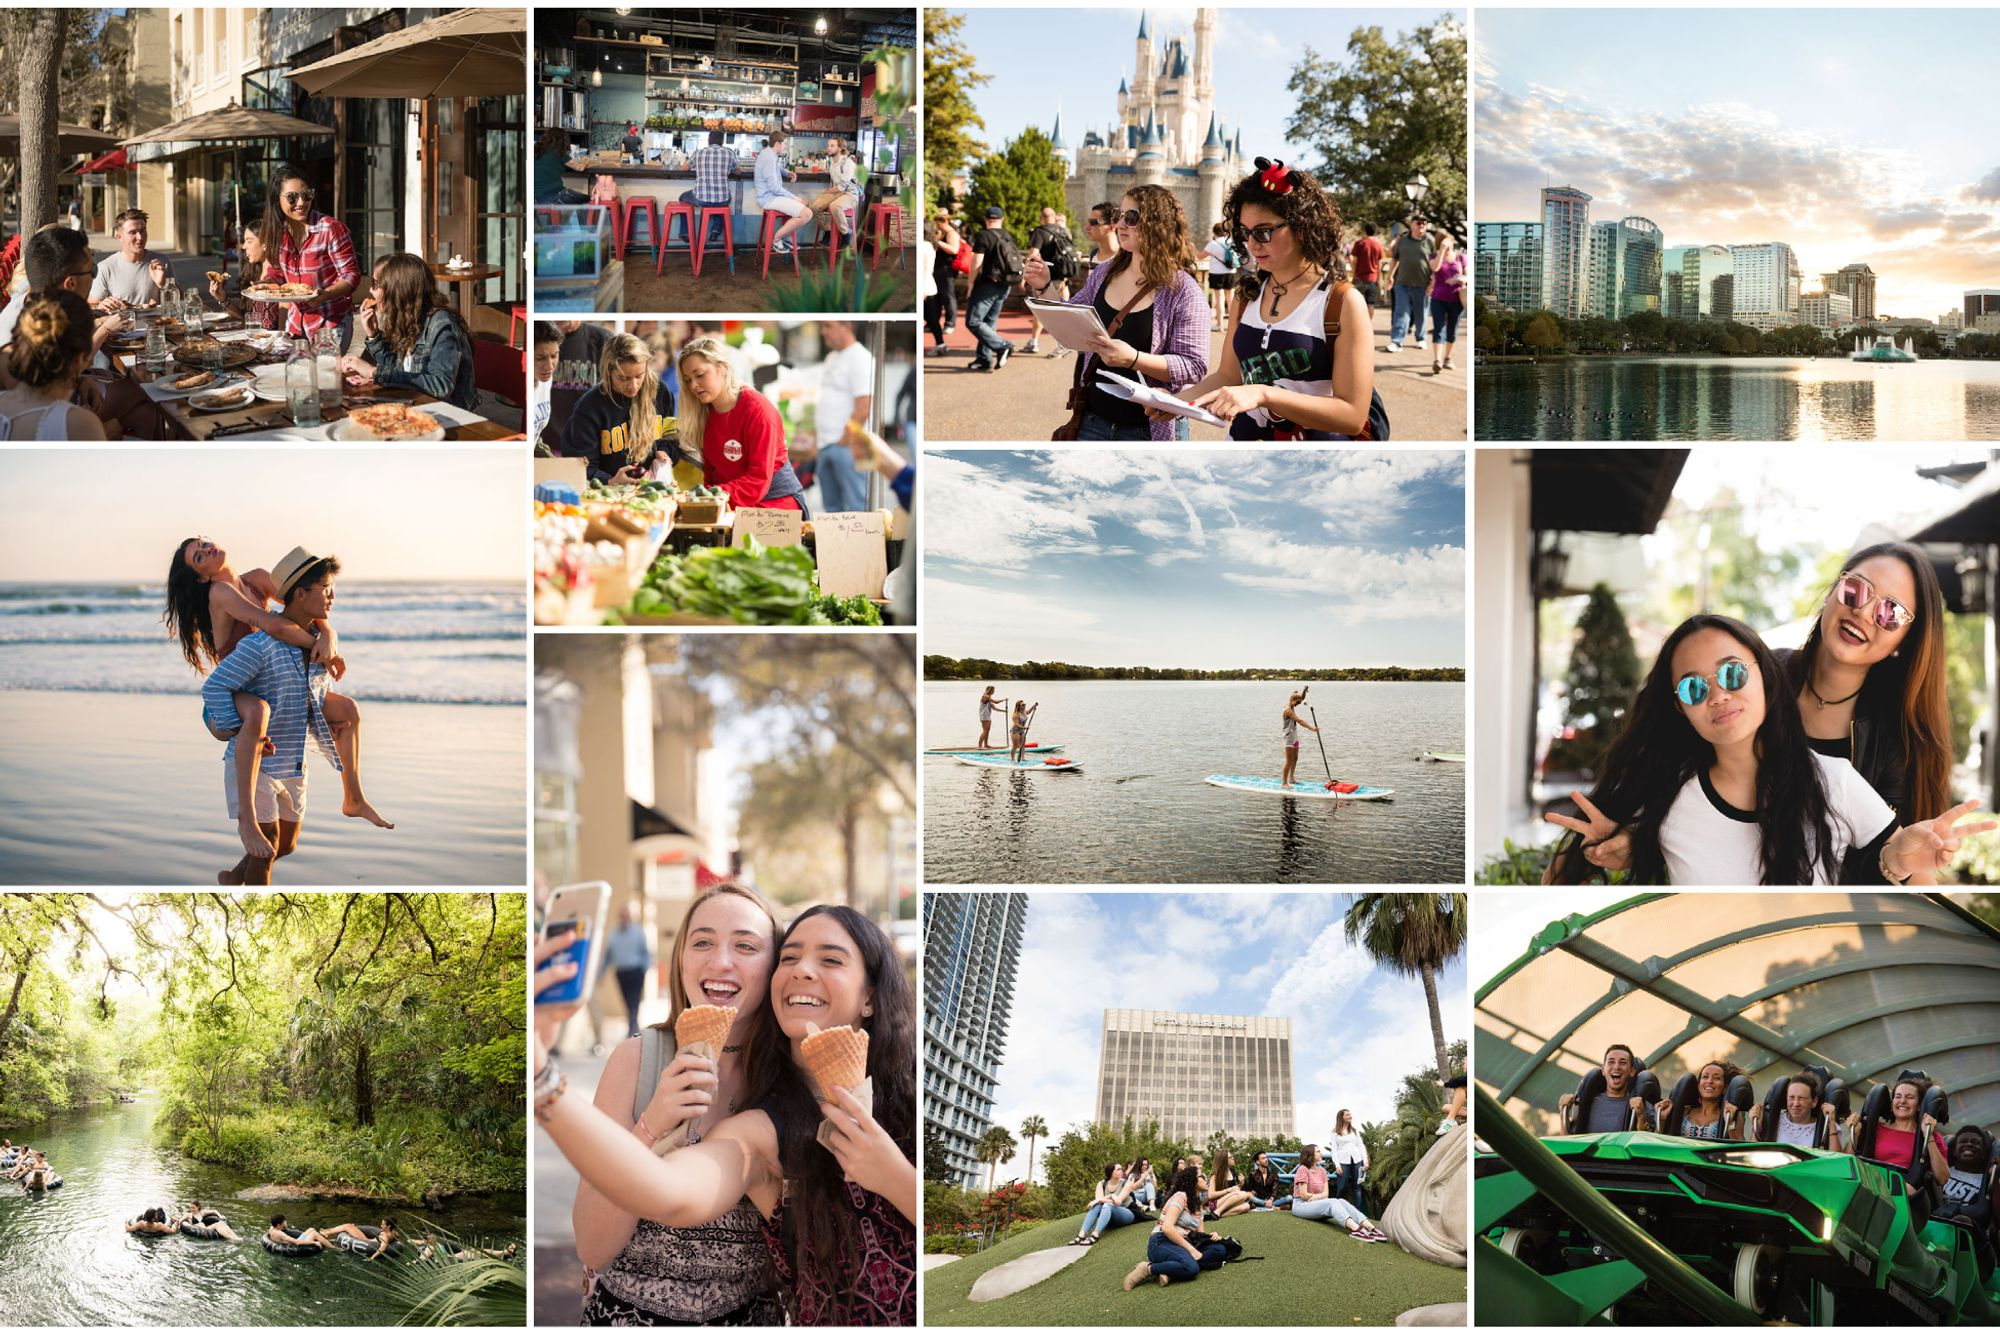 From Disney World and watersports to cute cafes and outdoor excursions, Orlando is a vibrant college city.